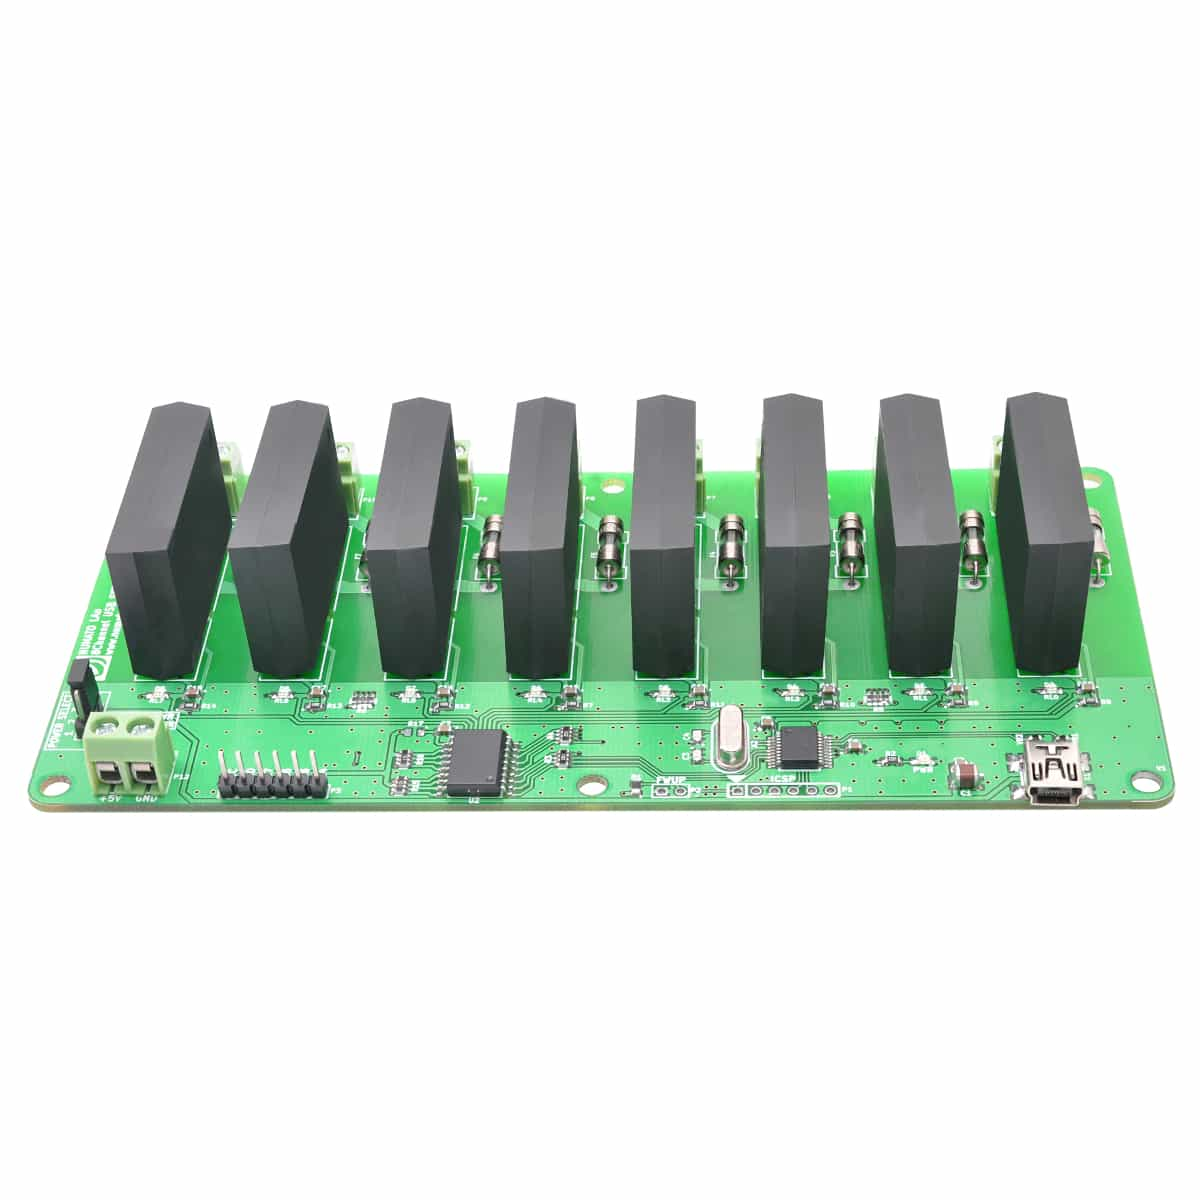 8 Channel USB Solid State Relay Module With GPIO | Numato Lab